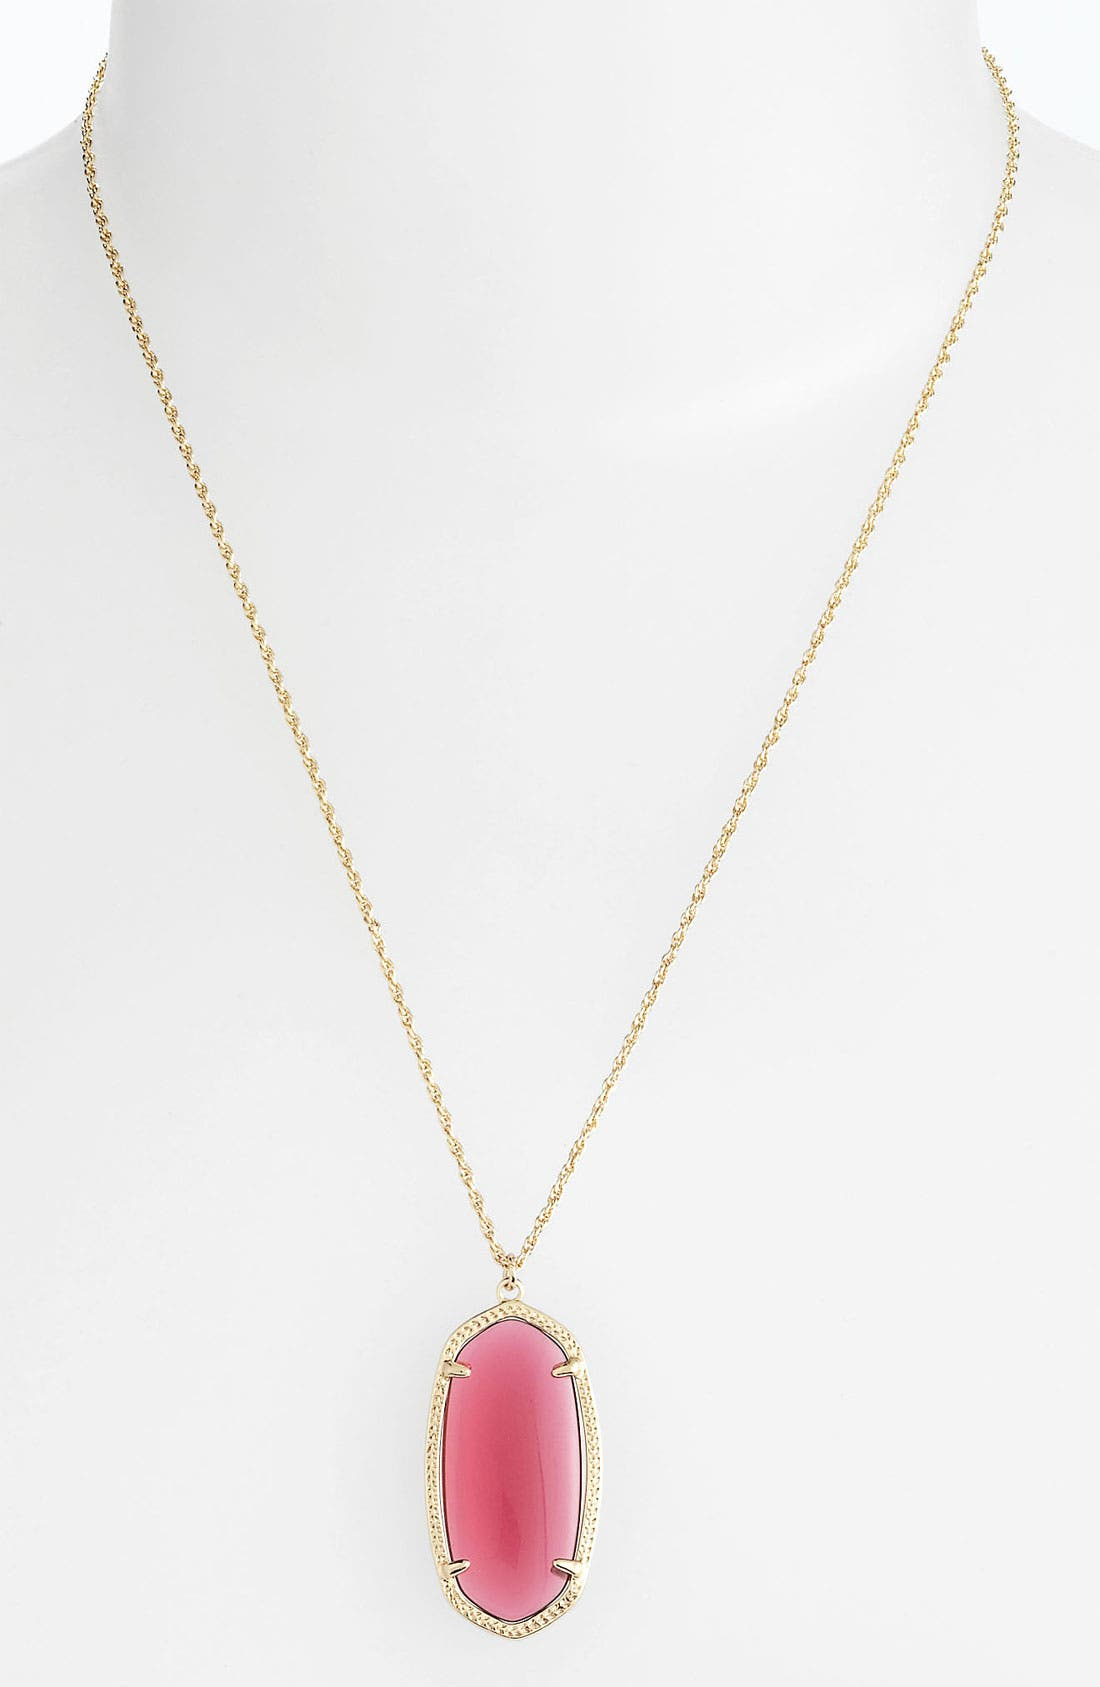 Alternate Image 1 Selected - Kendra Scott 'Elise' Pendant Necklace (Nordstrom Exclusive)